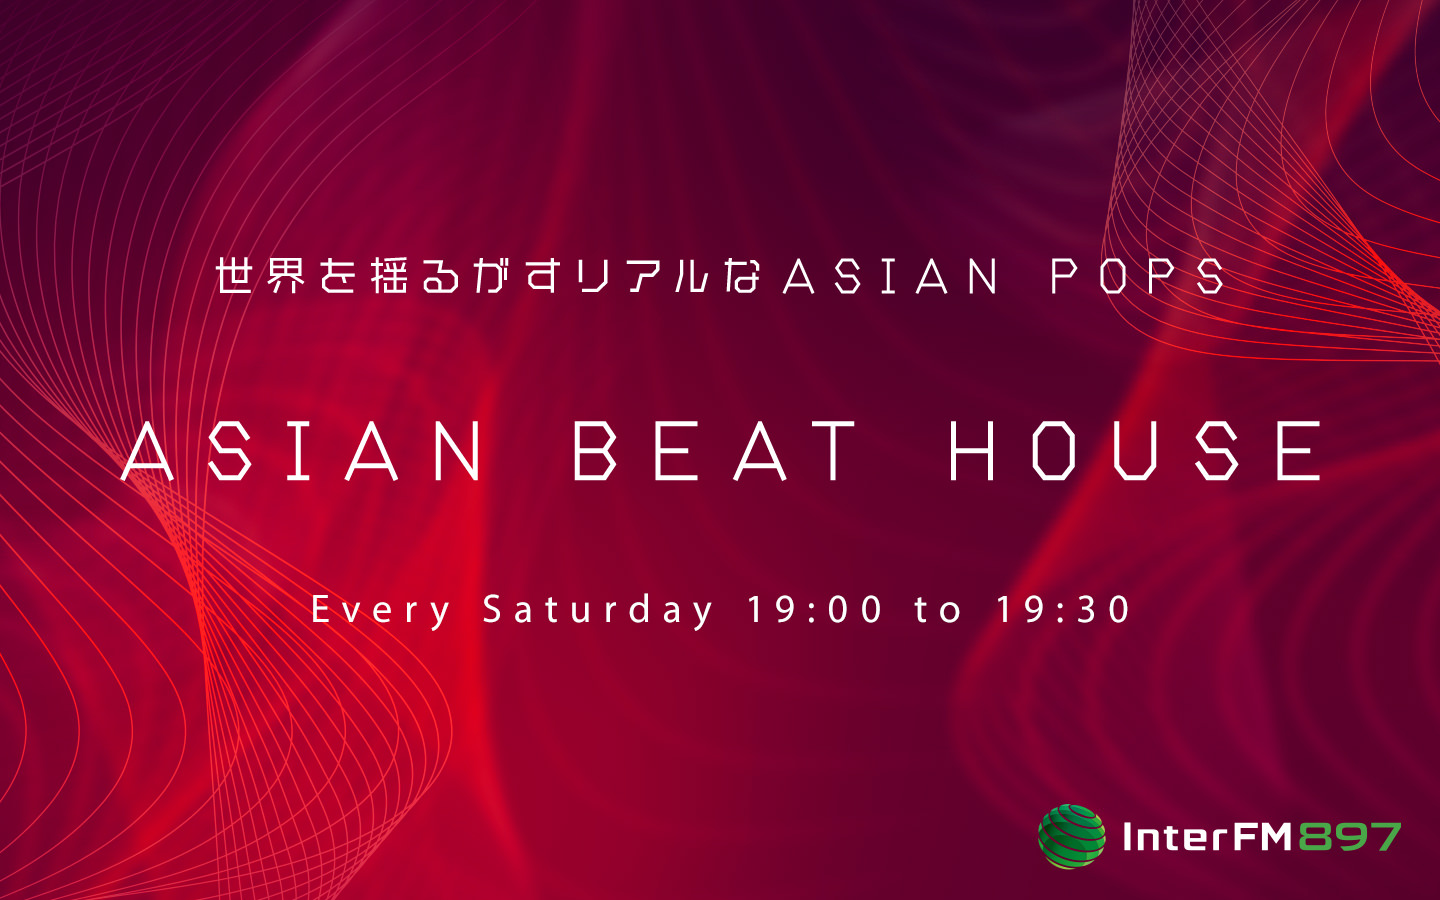 ASIAN BEAT HOUSE